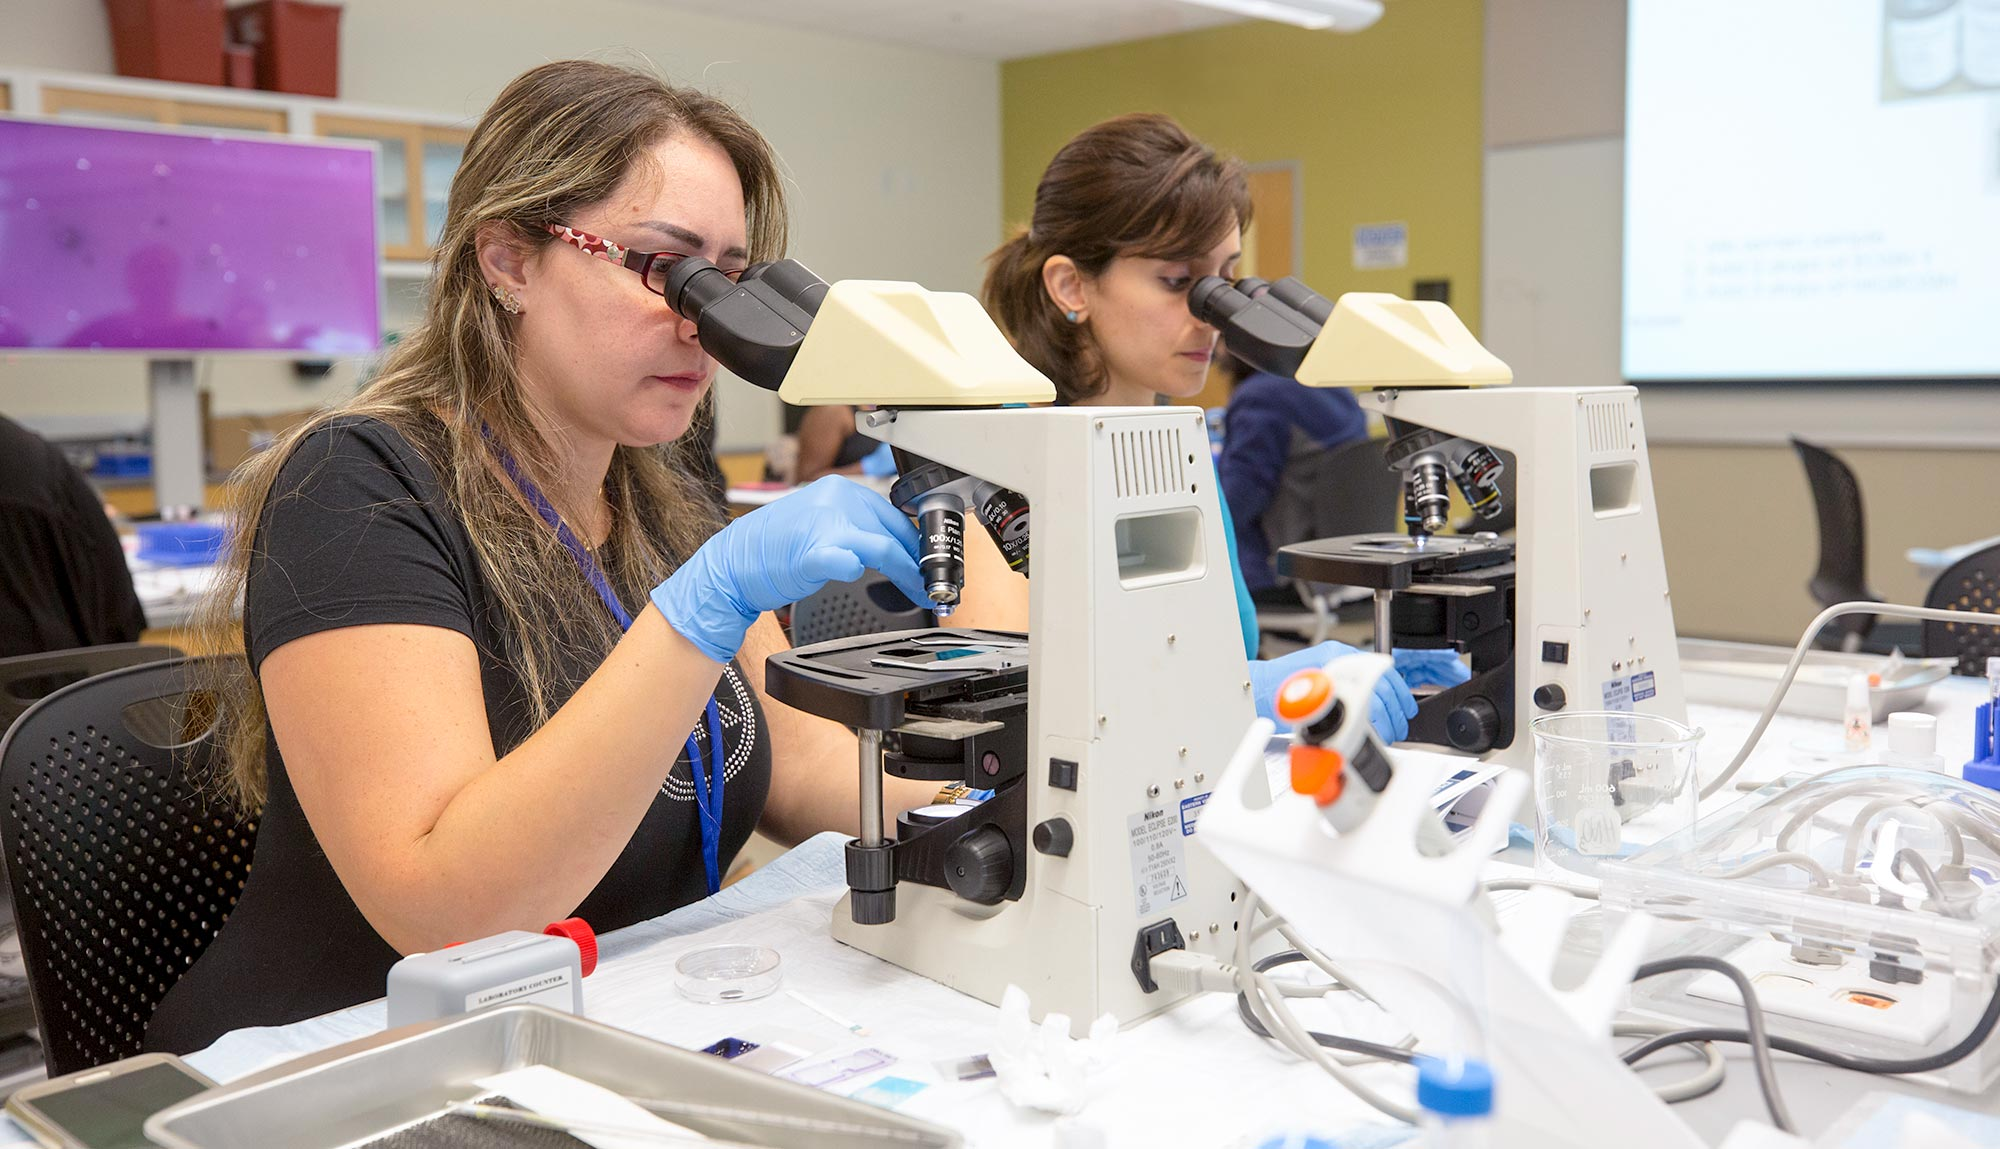 Students look through microscopes in a laboratory setting.